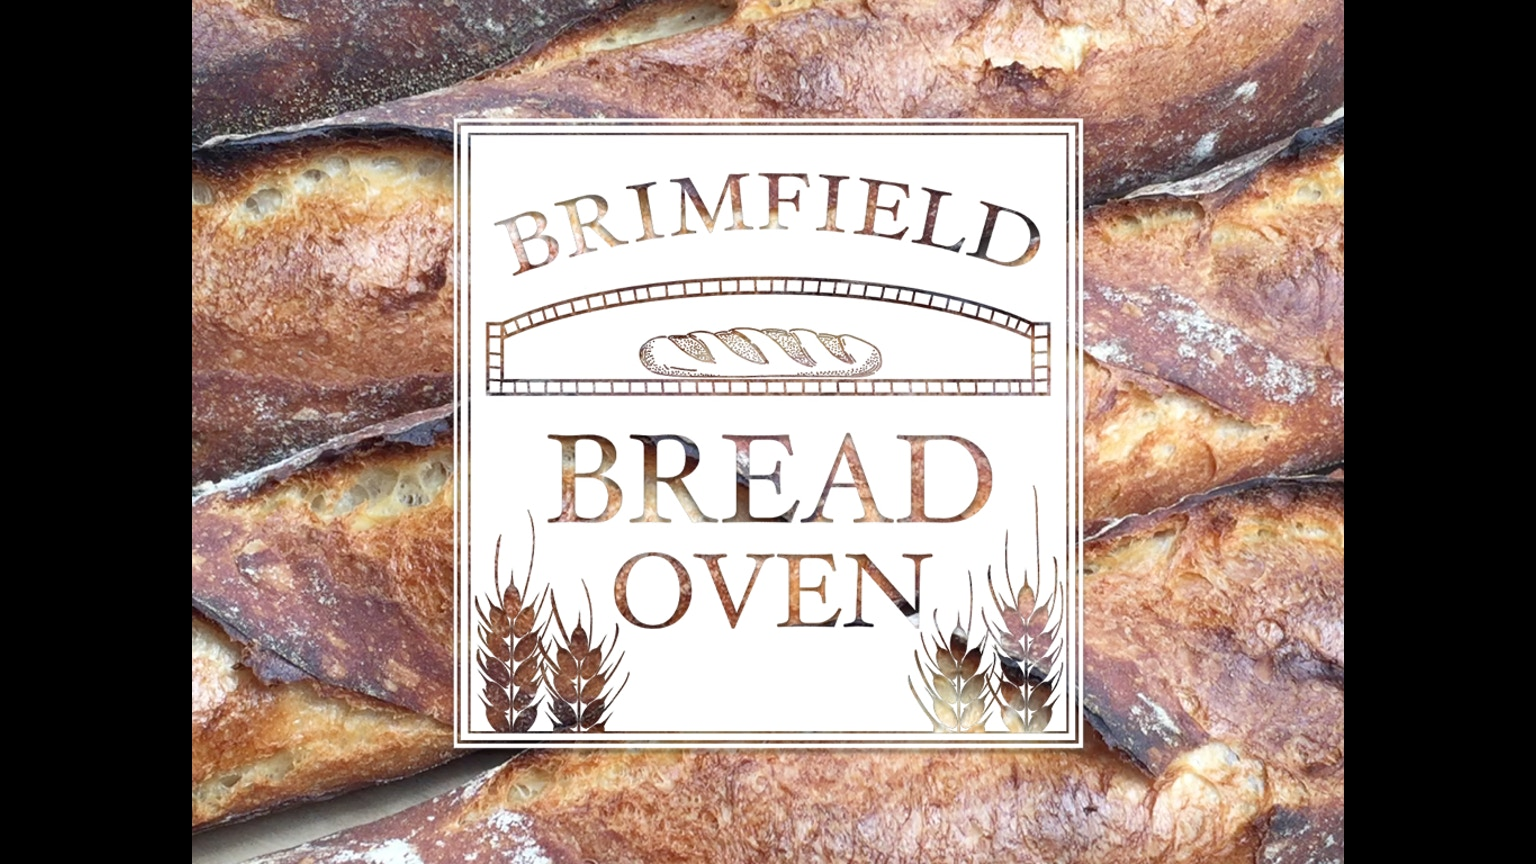 Brimfield Bread Oven A Wood Fired Bakery And Cafe By